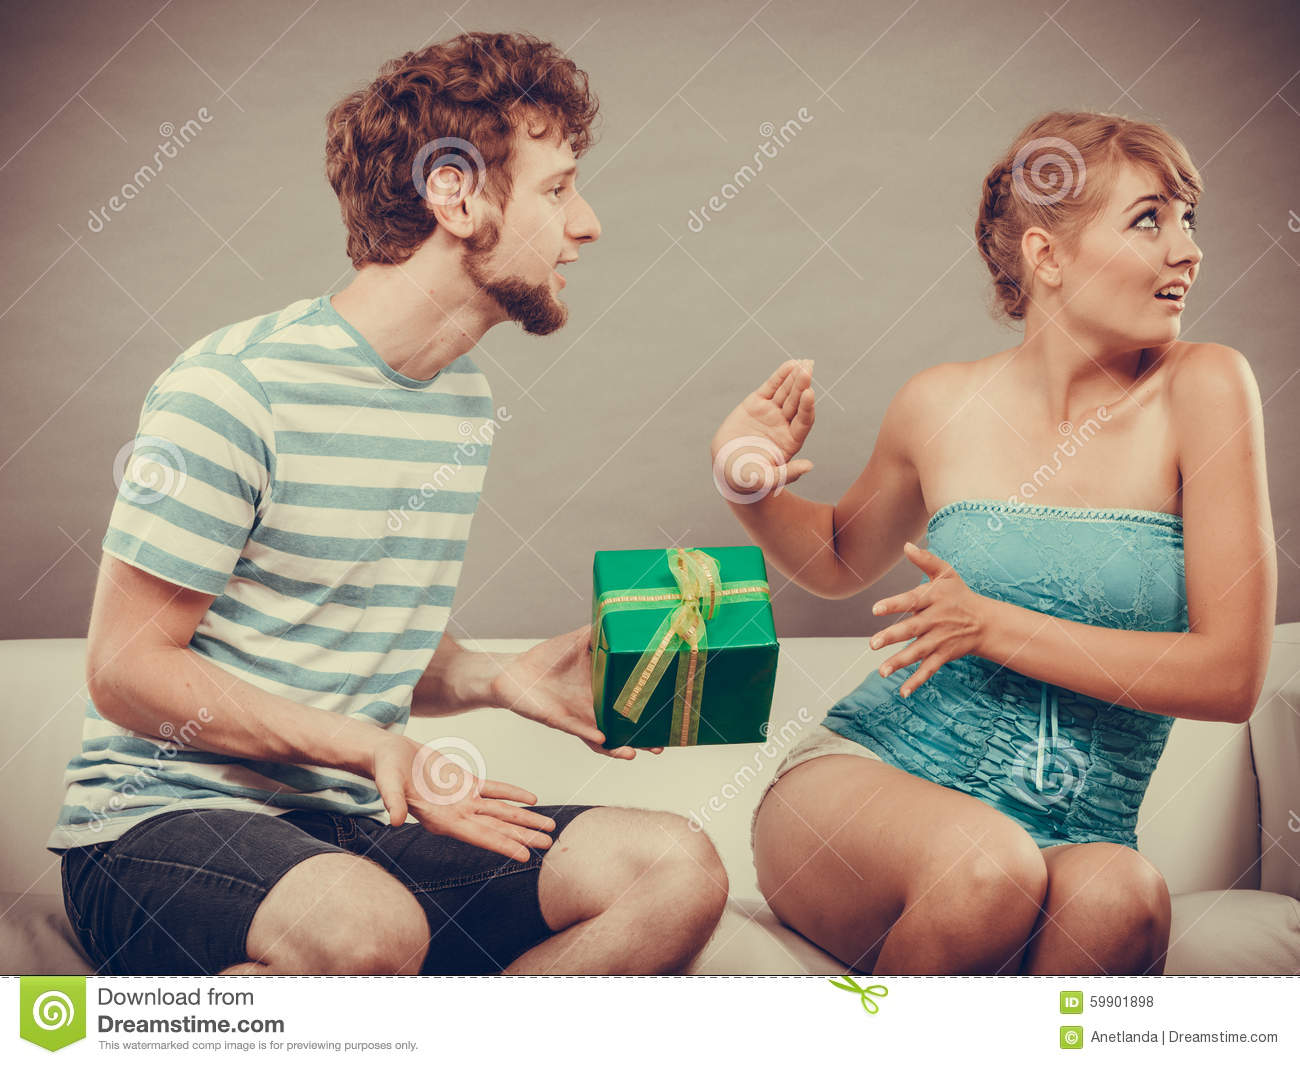 Gifts For Young Men: Young Man Giving Offended Woman Gift Box Stock Photo